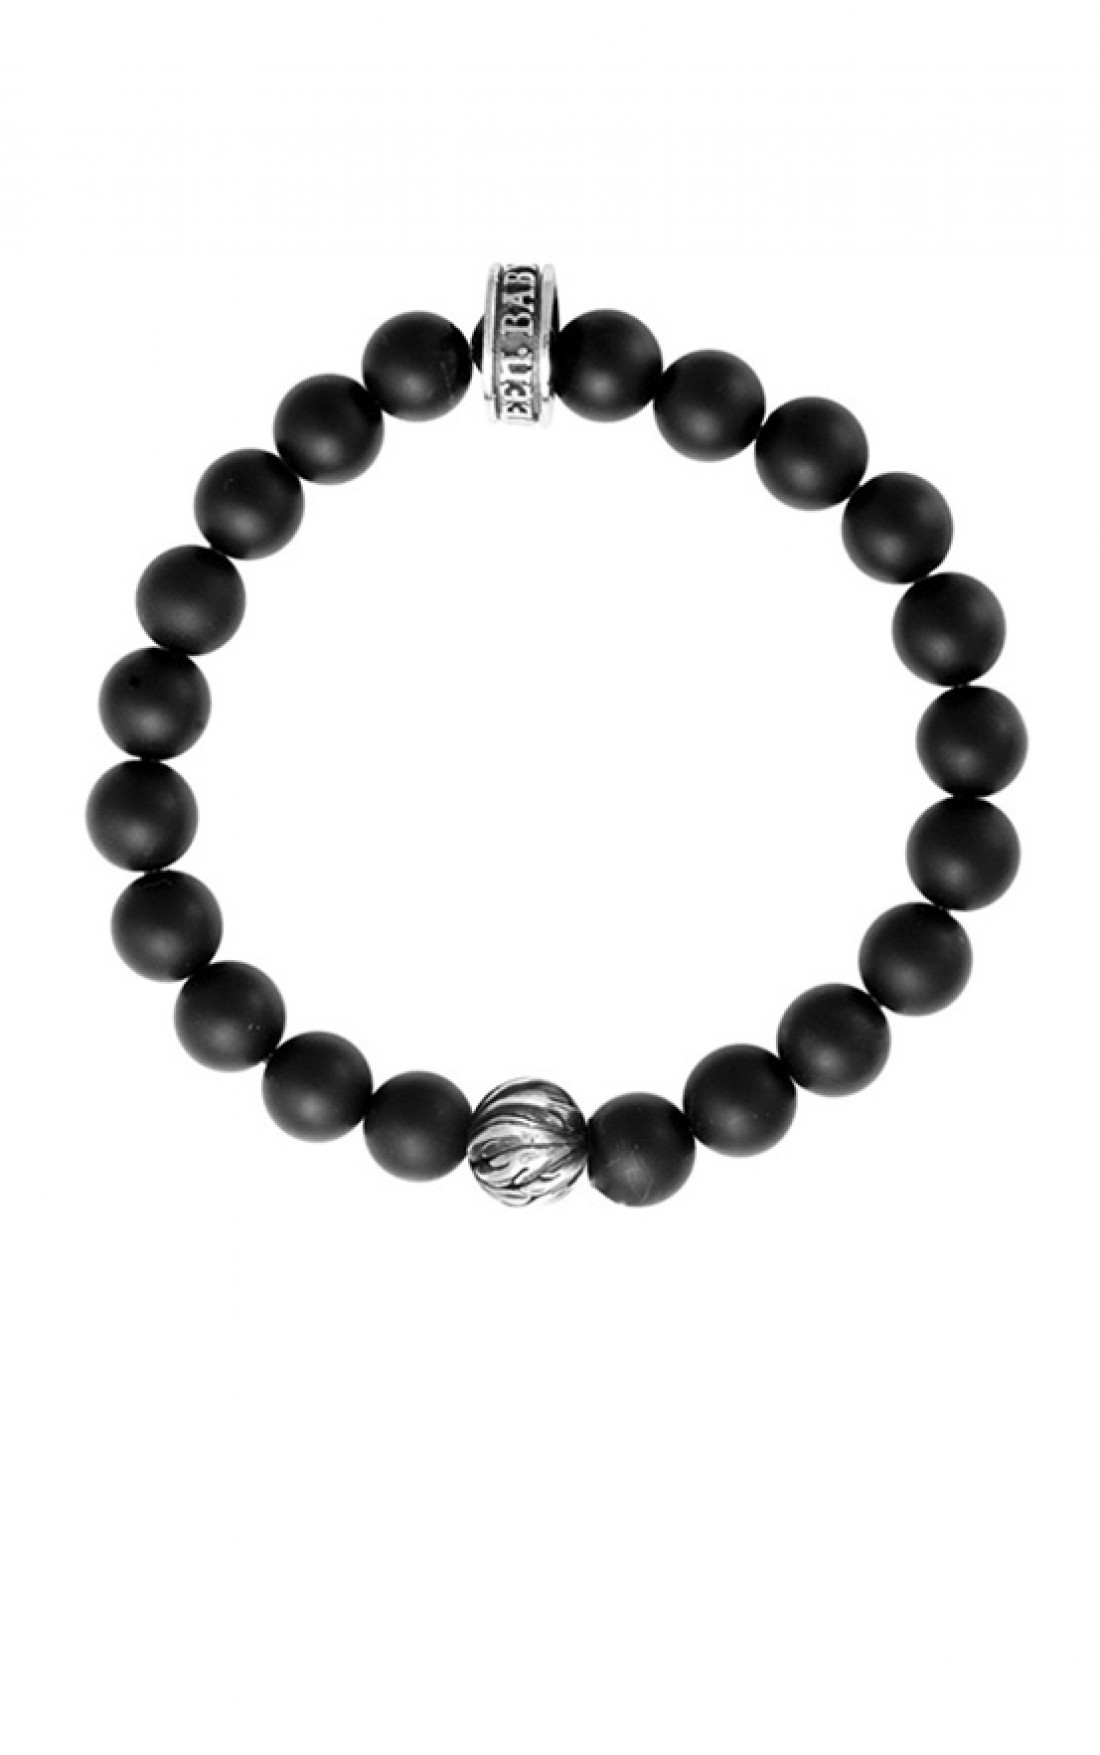 King Baby - Onyx Bracelet with Silver Feathered Bead (K40-5811)